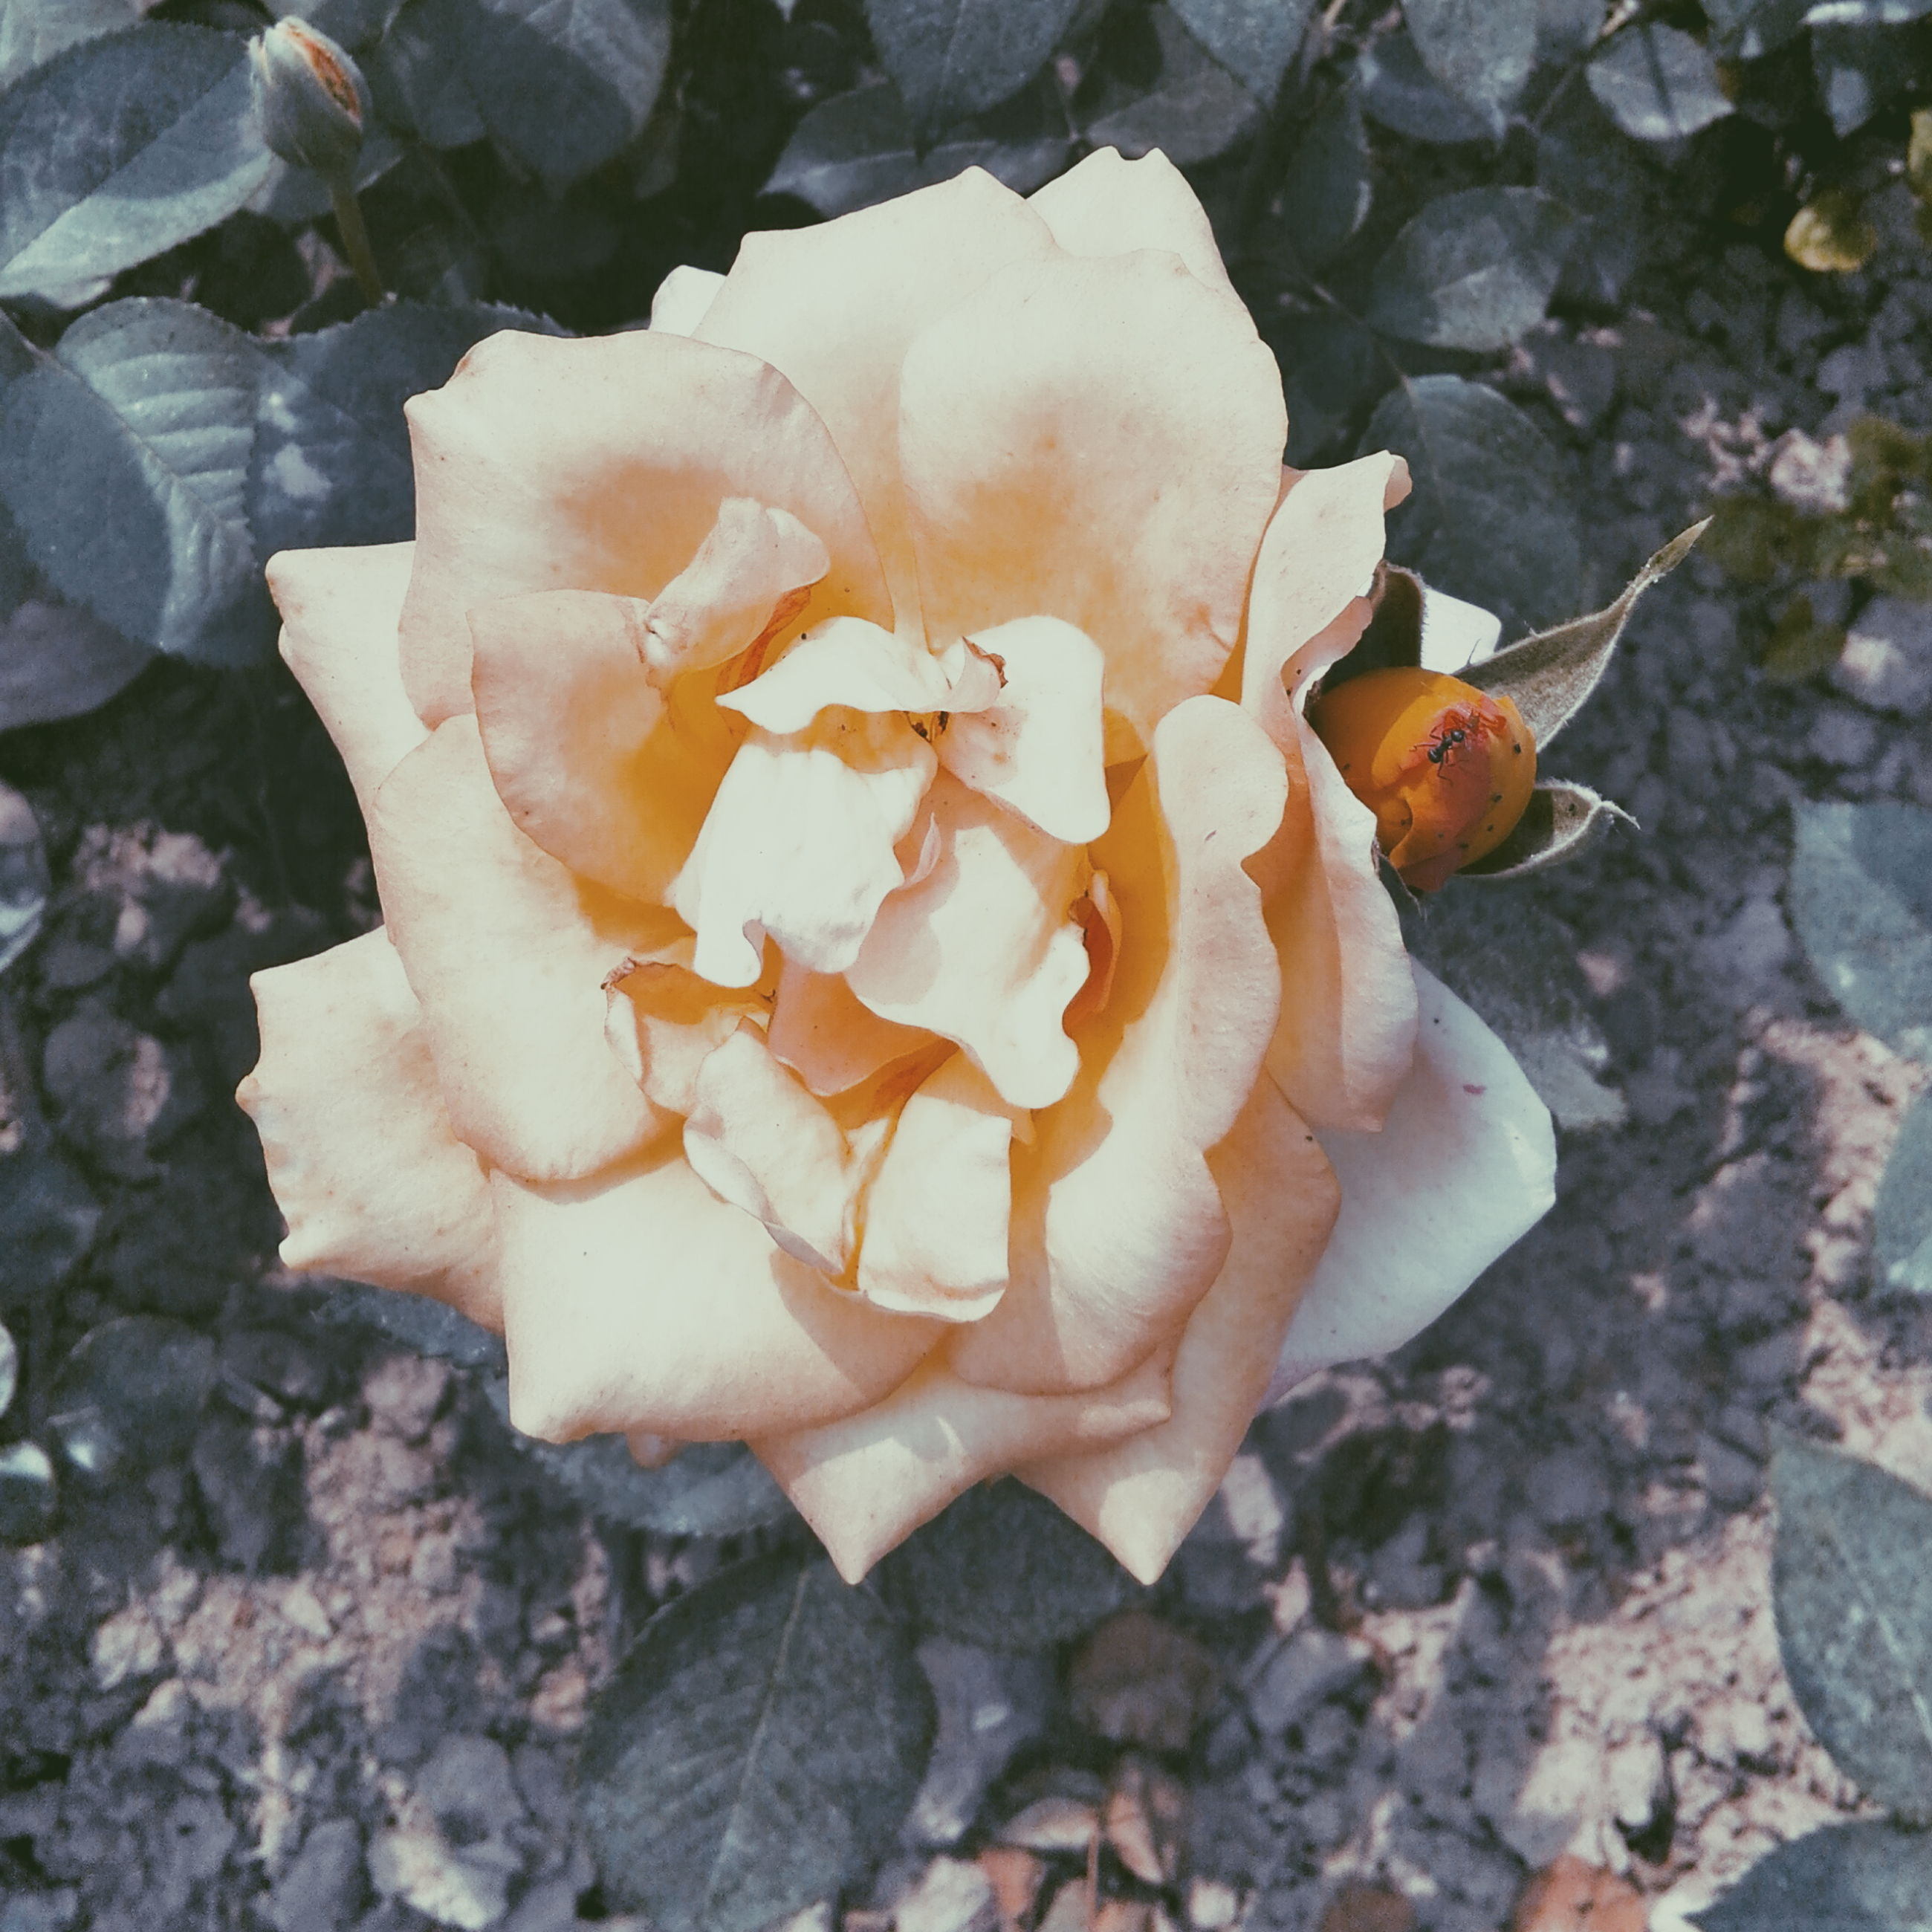 fragility, flower, petal, freshness, fungus, mushroom, close-up, flower head, nature, beauty in nature, growth, single flower, high angle view, day, outdoors, focus on foreground, rose - flower, no people, blooming, orange color